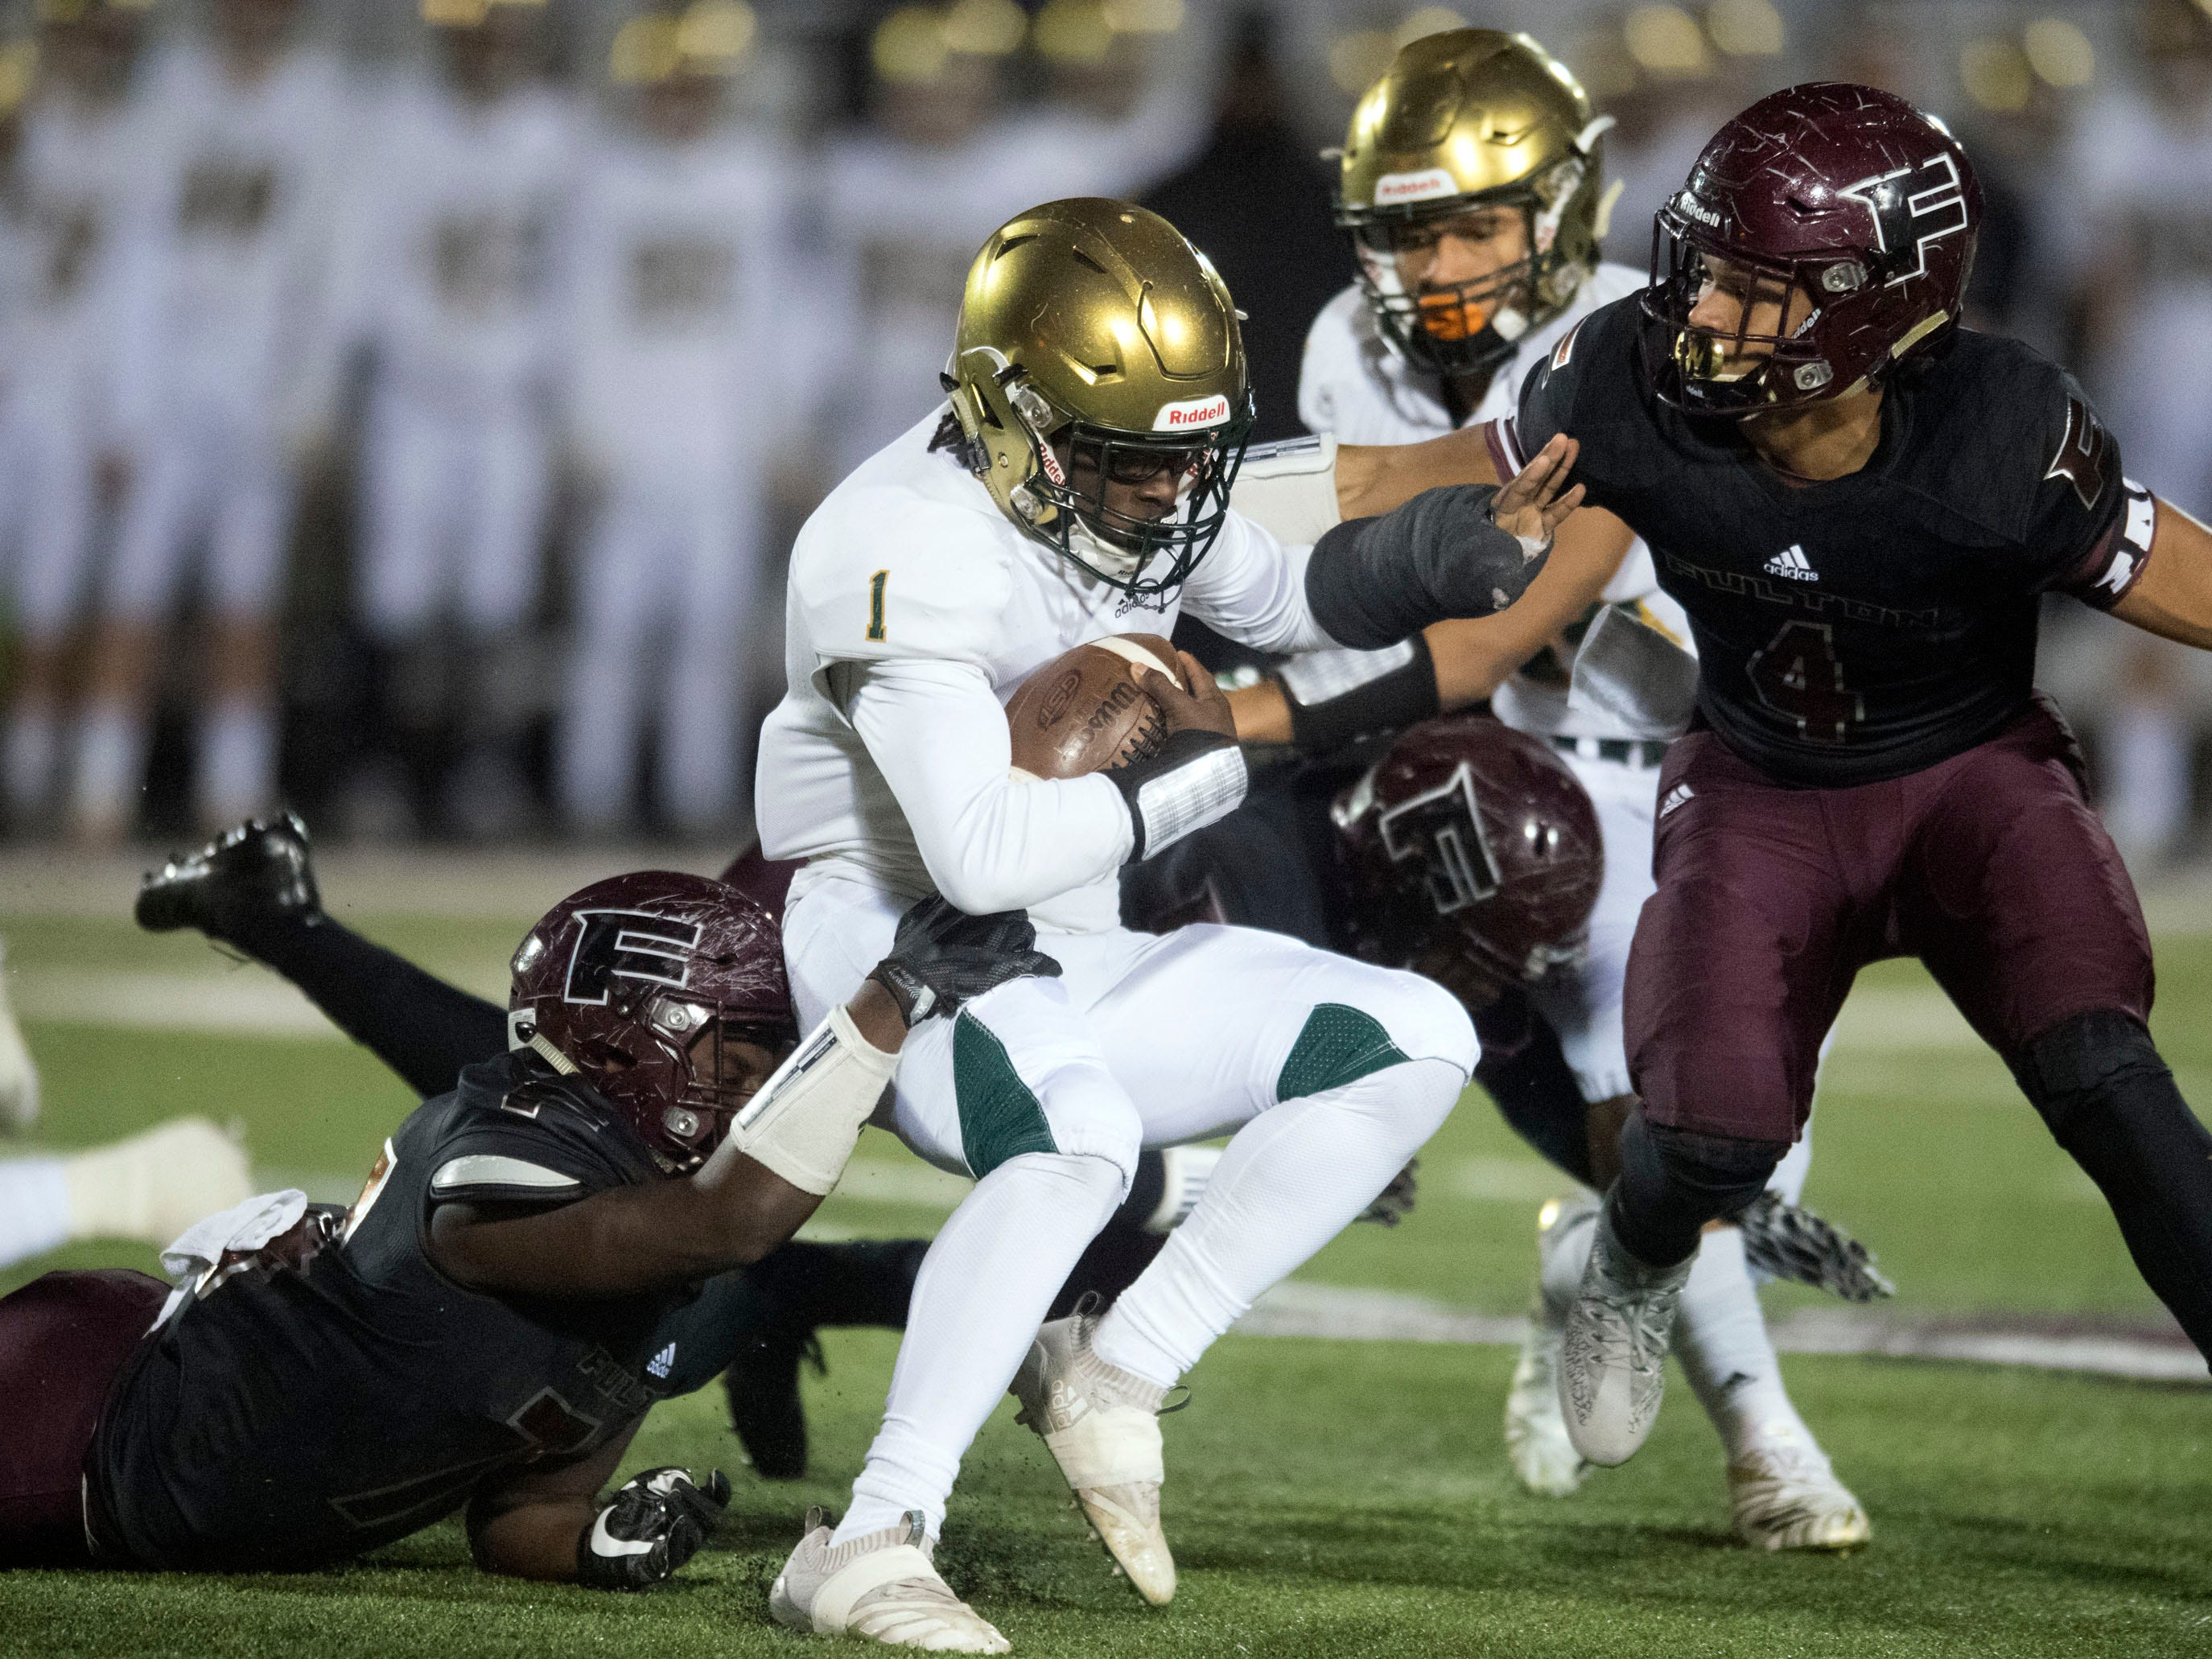 Knoxville Catholic's Keondre' Jarmon (1) is tacked by the Fulton defense. Knoxville Catholic beat Fulton, 28-25 in the second round of the Class 5A playoffs on Friday, November 9, 2018.